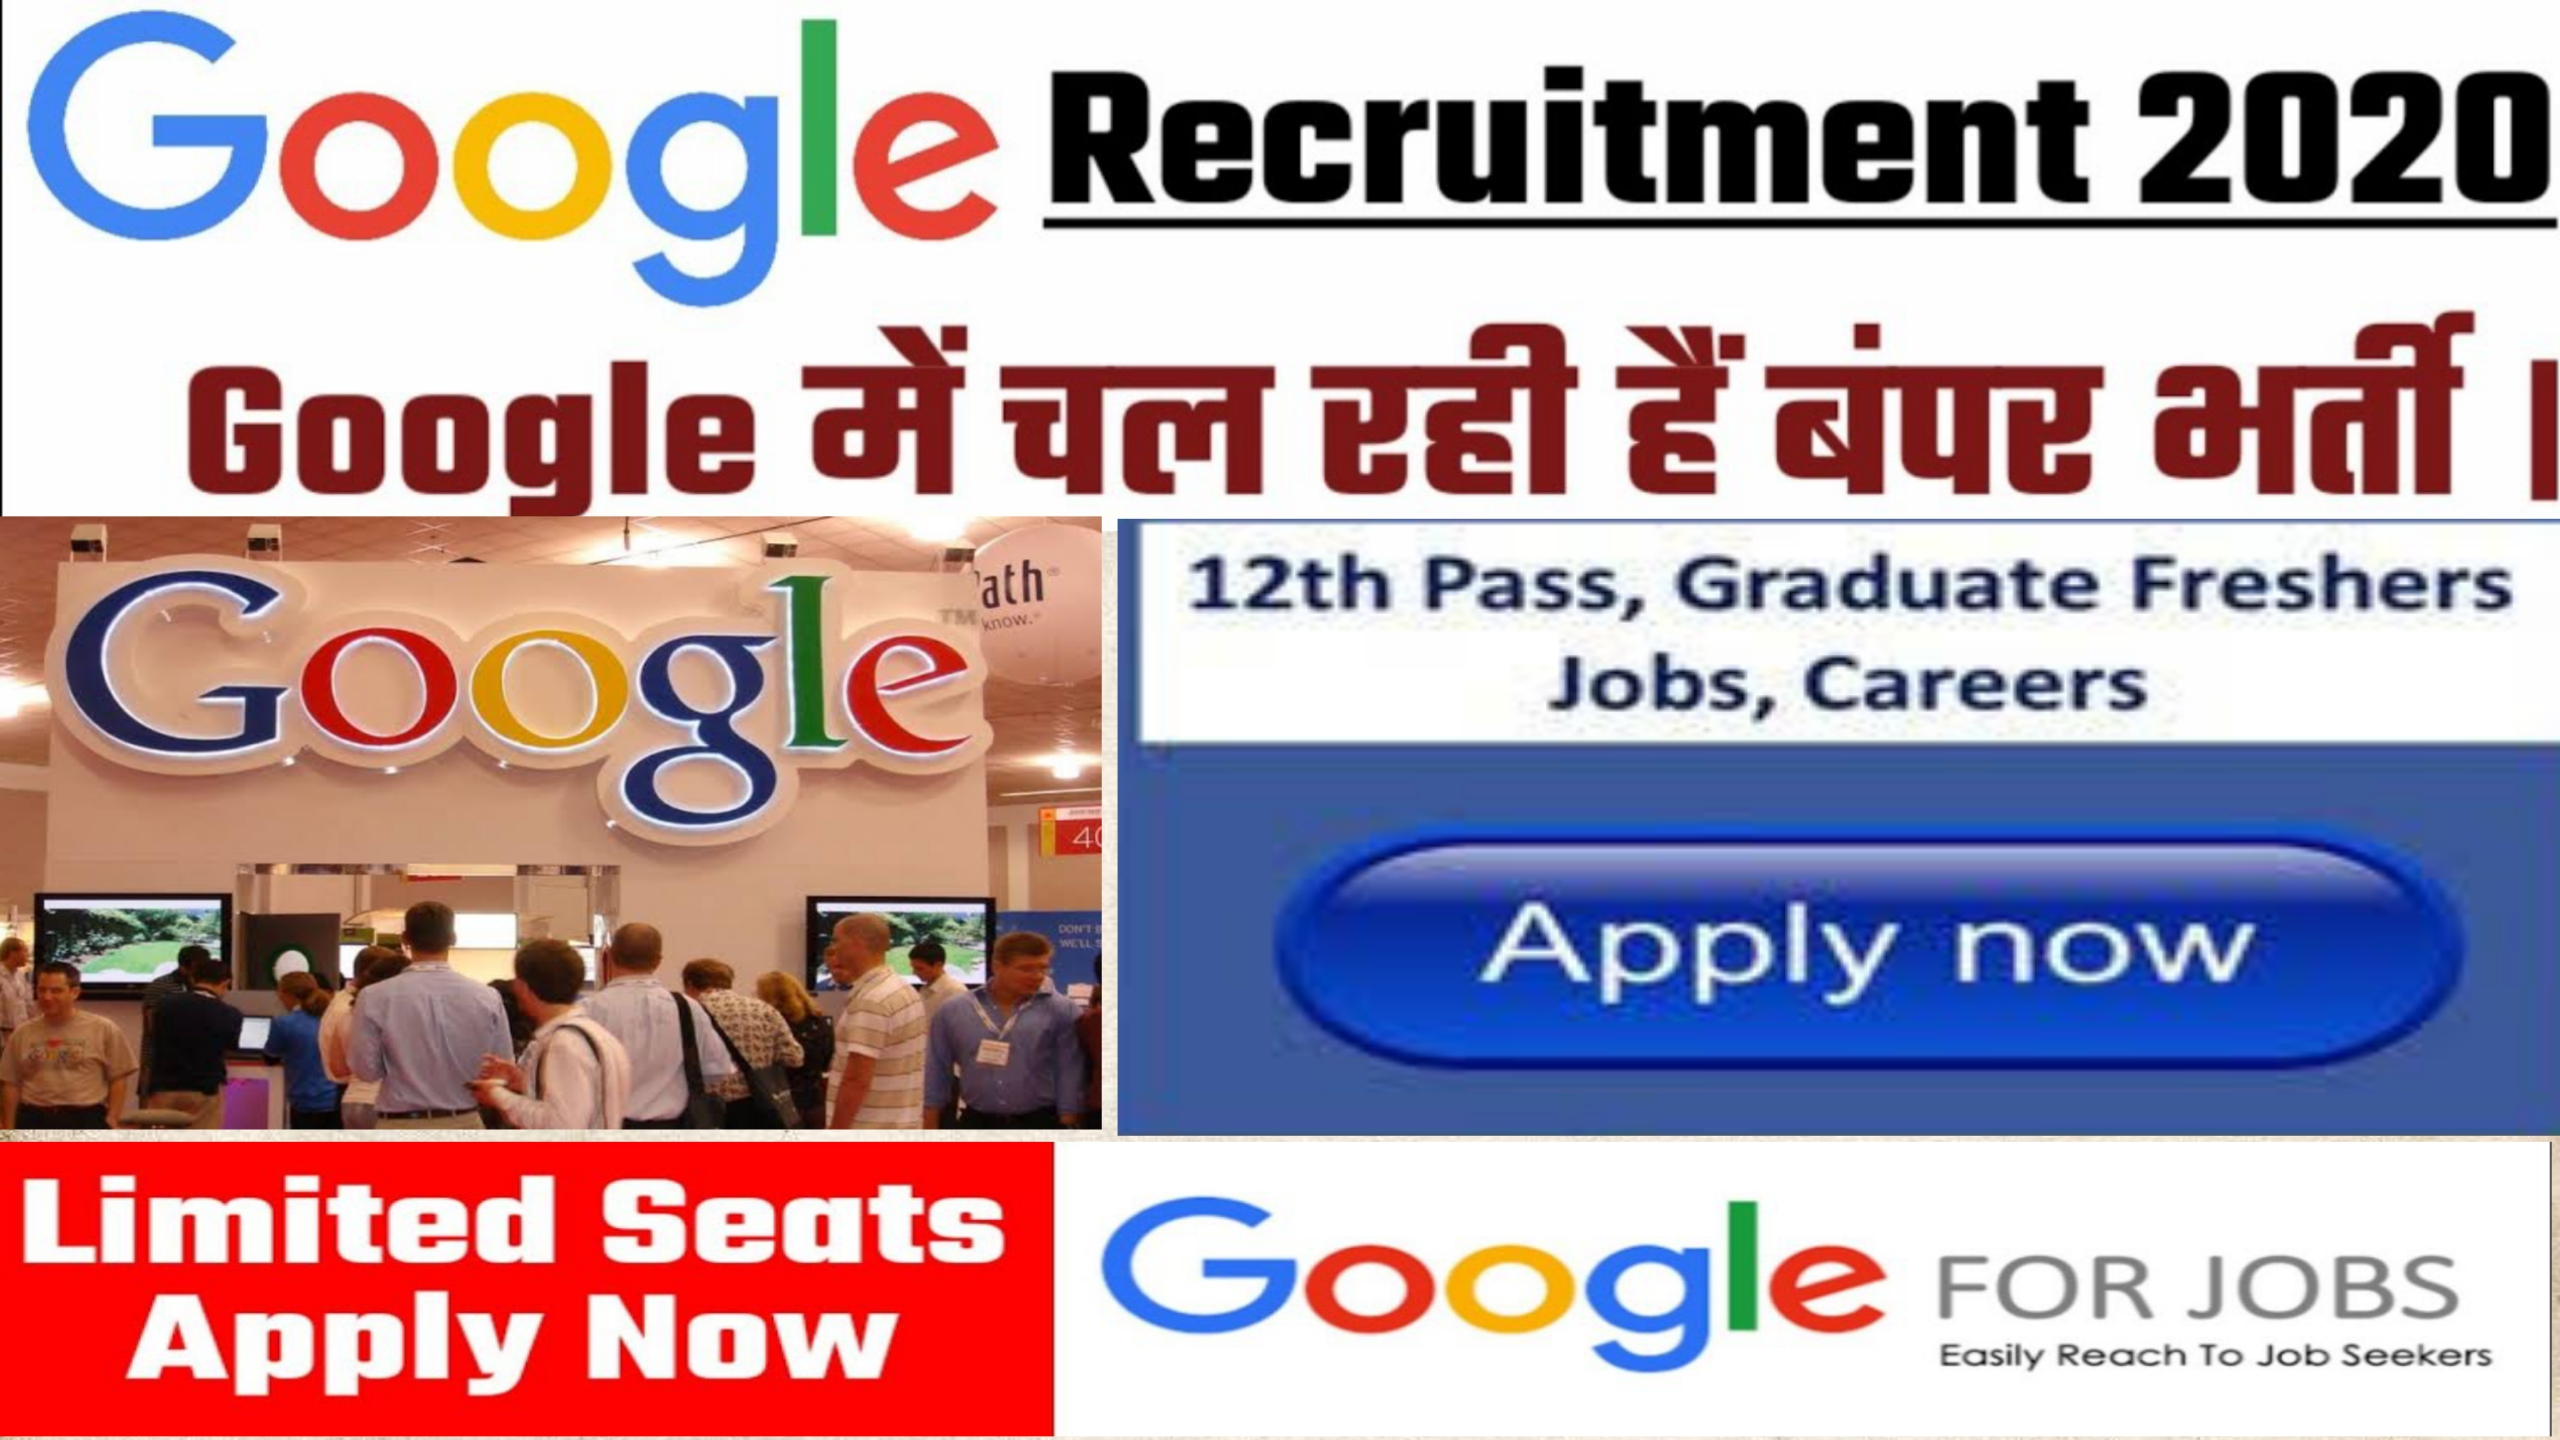 Google Recruitment 2020